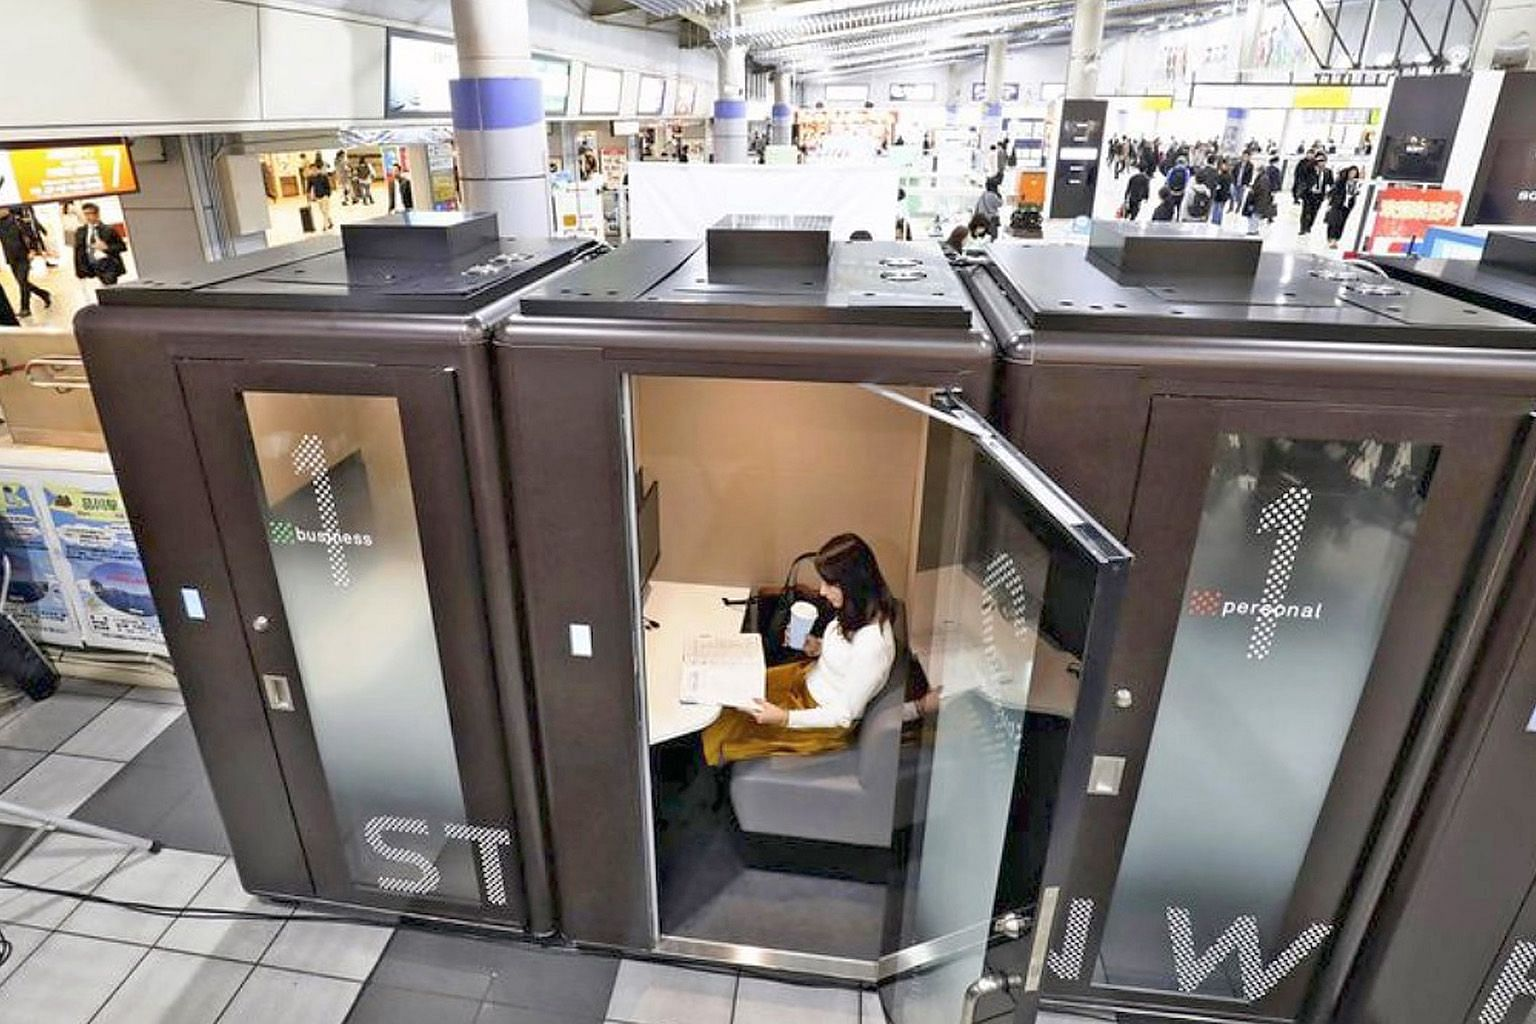 JR East's newly installed individual-use offices inside JR Shinagawa Station. Reservations are made via a designated website and users are allowed to stay in the space for up to 30 minutes. Each soundproofed booth is equipped with a desk, sofa, power